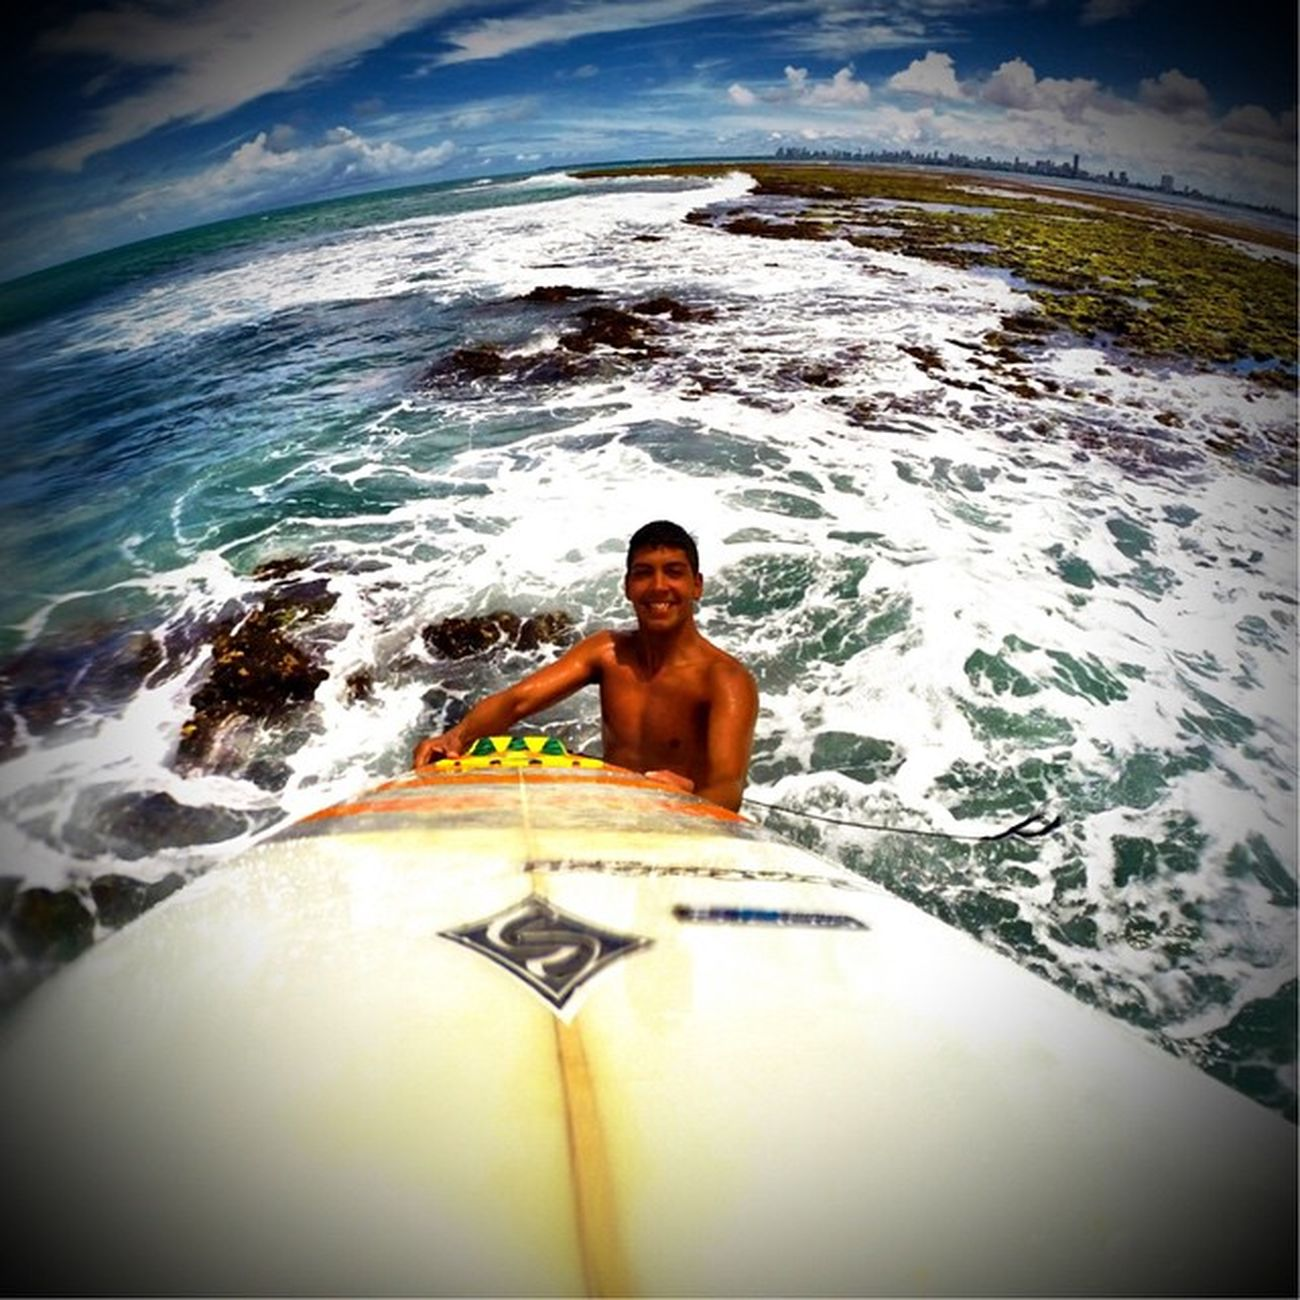 Longe da sociedade! 🌊🏄🙌🌊 Allallauu Gopro Goprosurf Goprohero4 Goprobrasil Goproselfies Goprophototheday Goprophotooftheday - Photooftheday via @lifeapp Surf Storm Session Supertide Surfstorm Selfiegopro Surfingiseverything Dialindo Deusnocontrolesempre LiveTheSearch Beach Mar